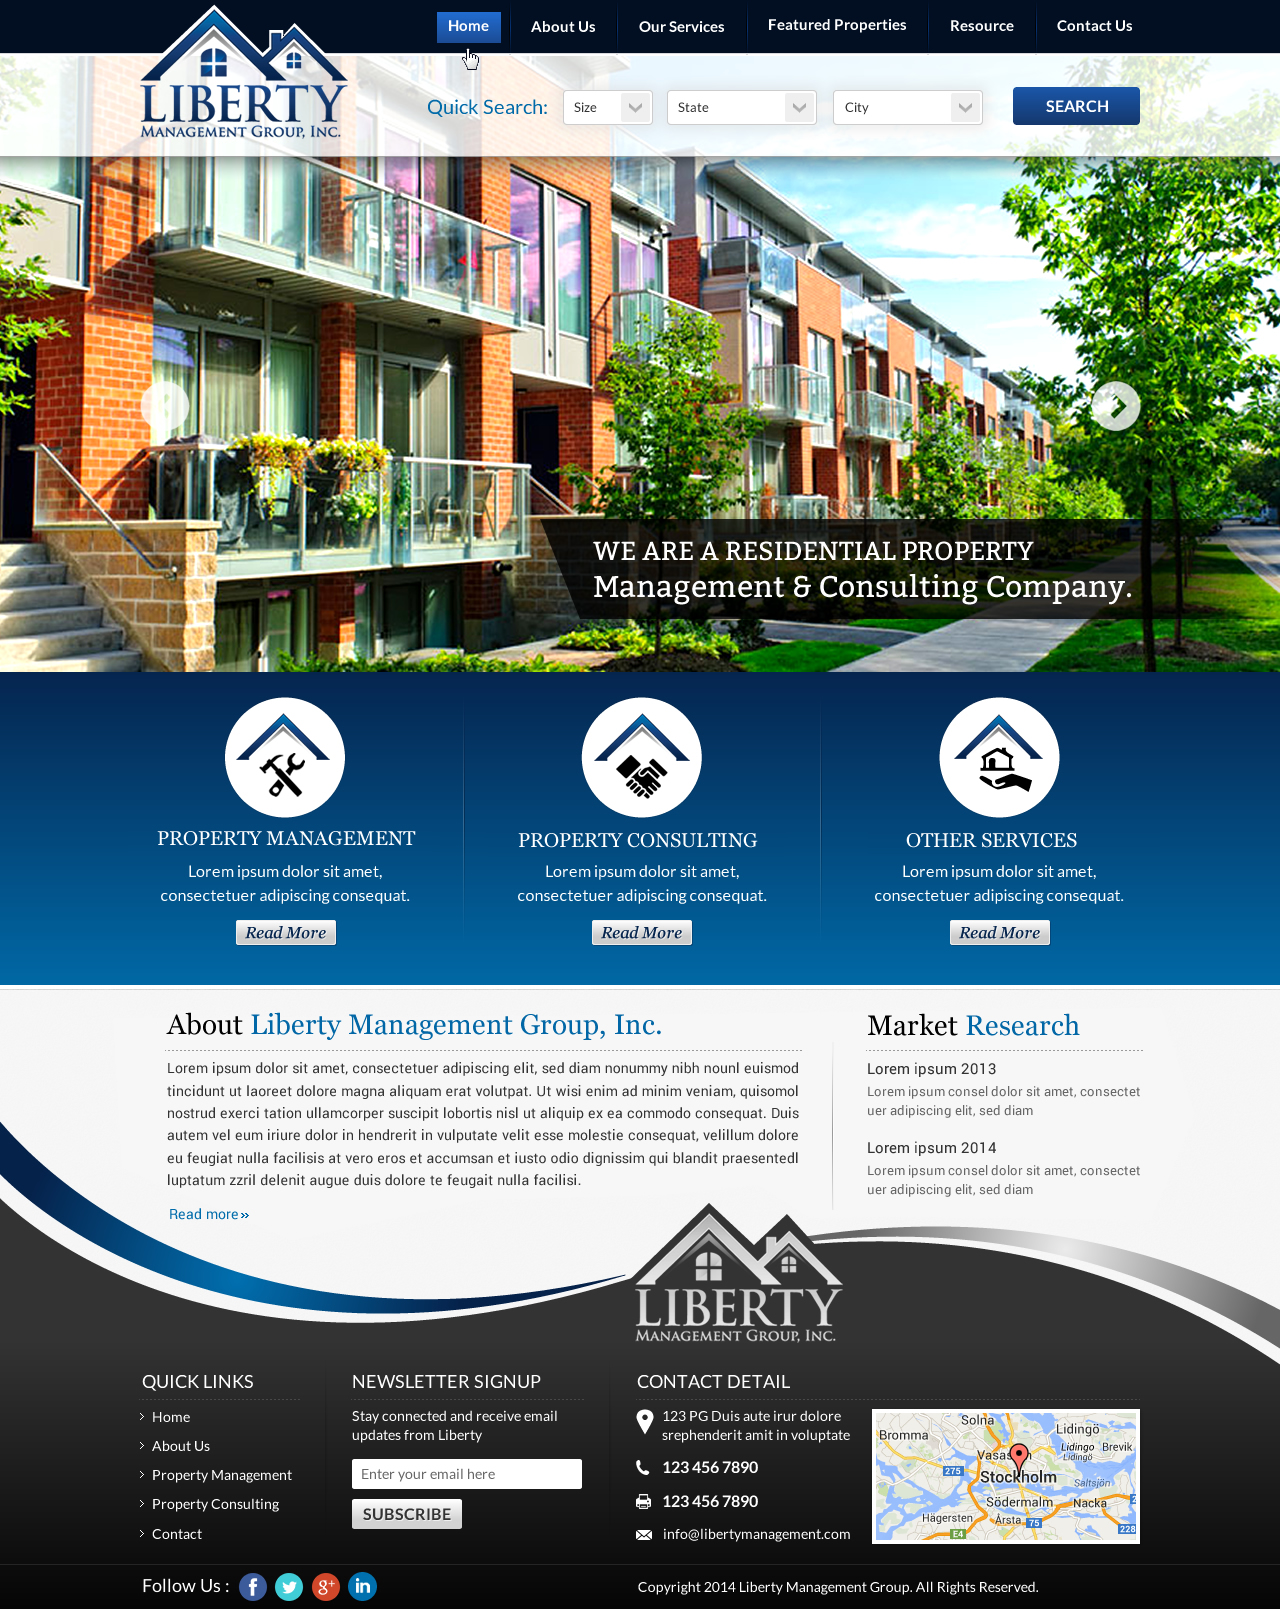 Website for a residential property management & consulting company - Consulting